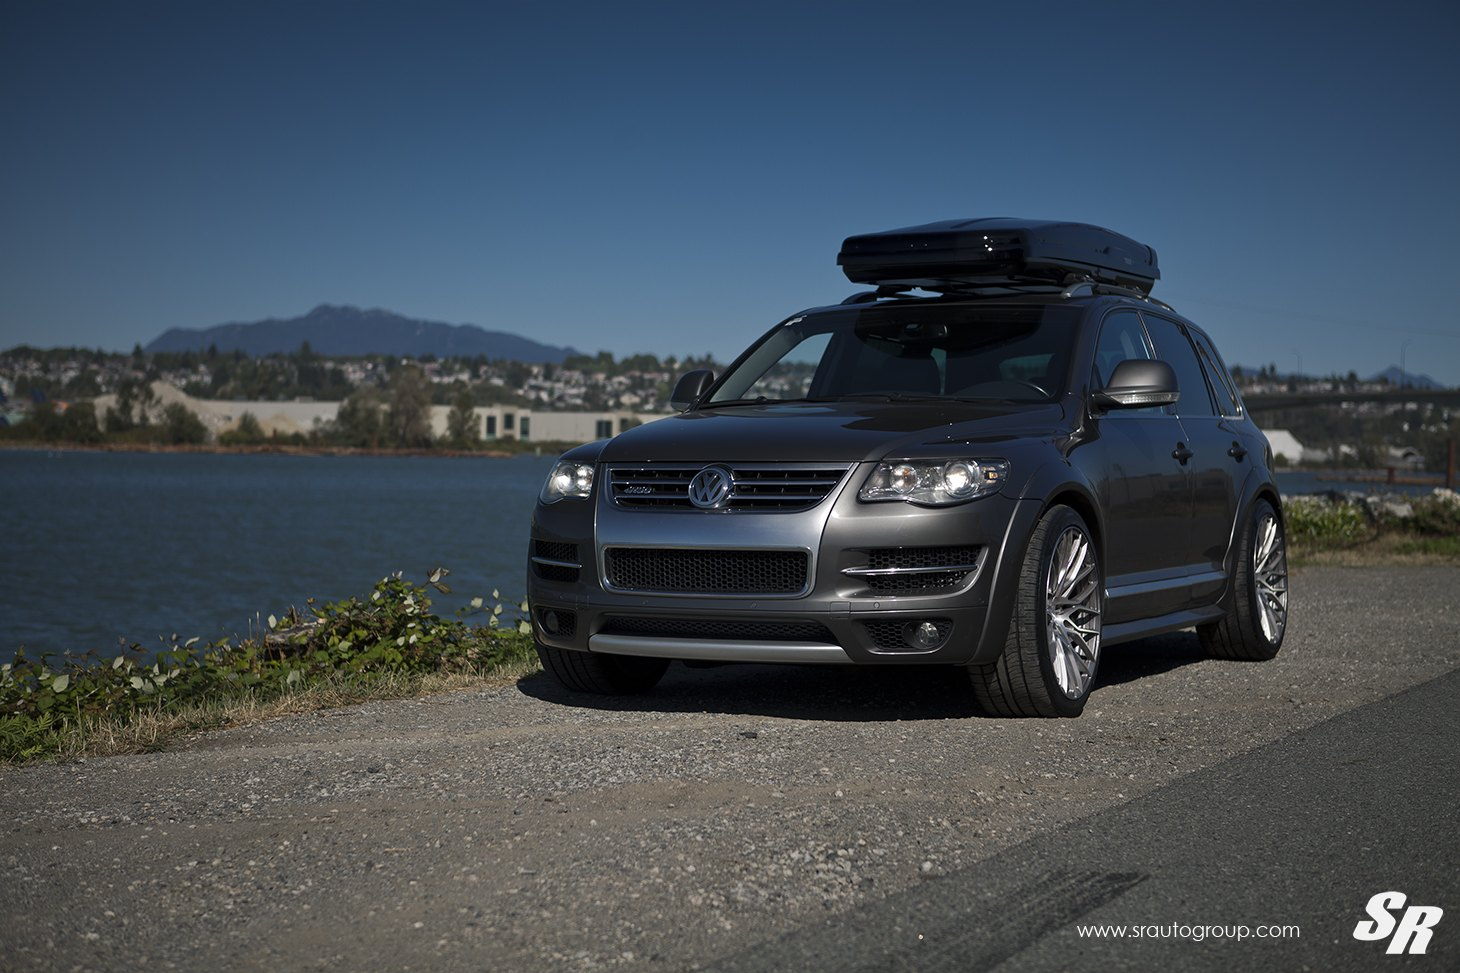 Imposing Gray Vw Touareg Shod In Chrome Wheels Caridcom